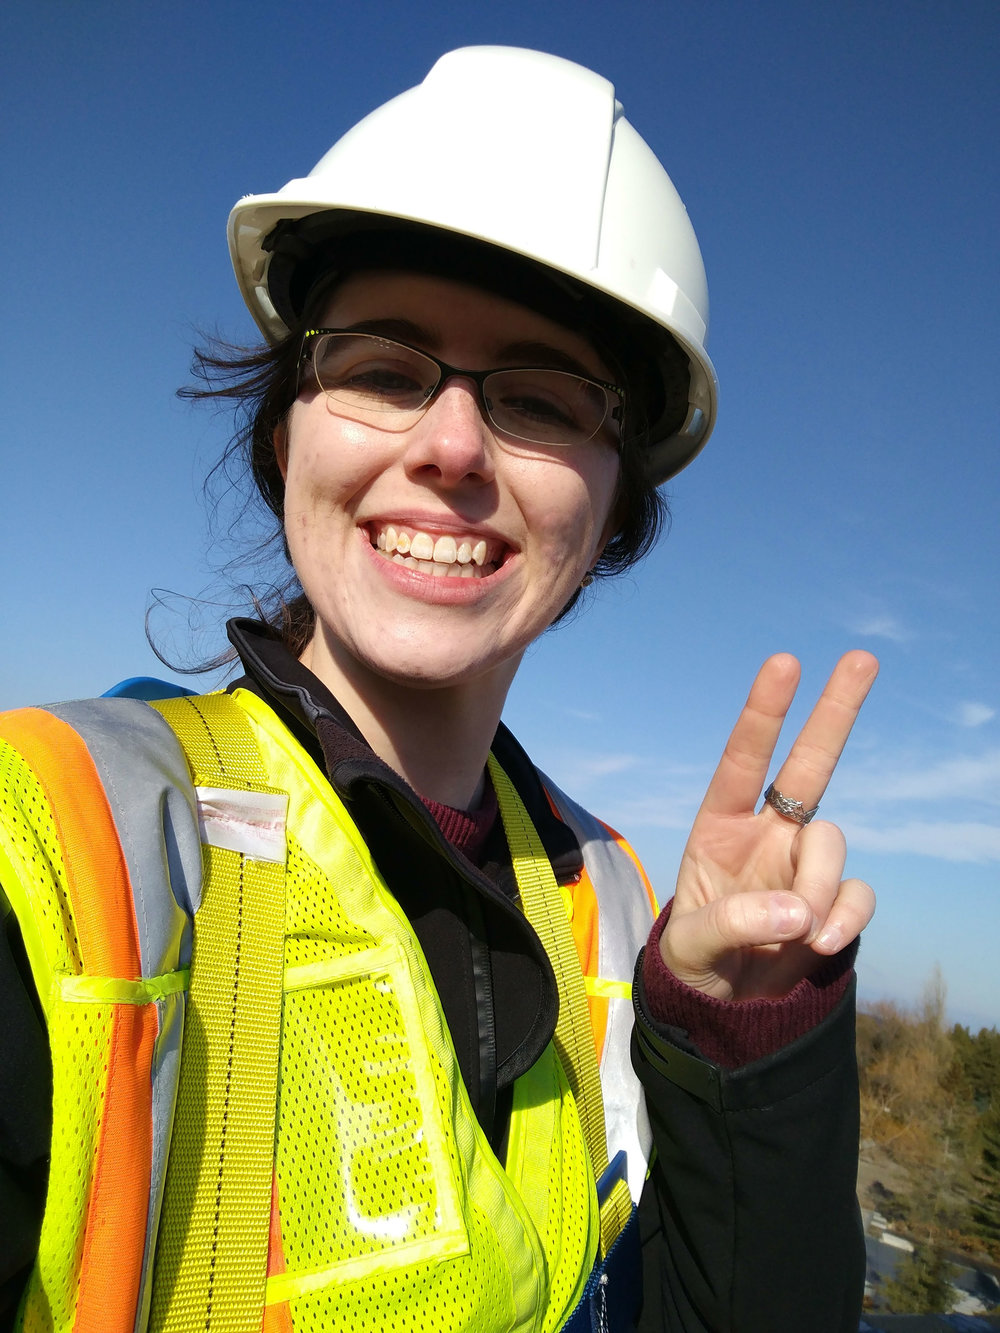 Throwing signs while on site